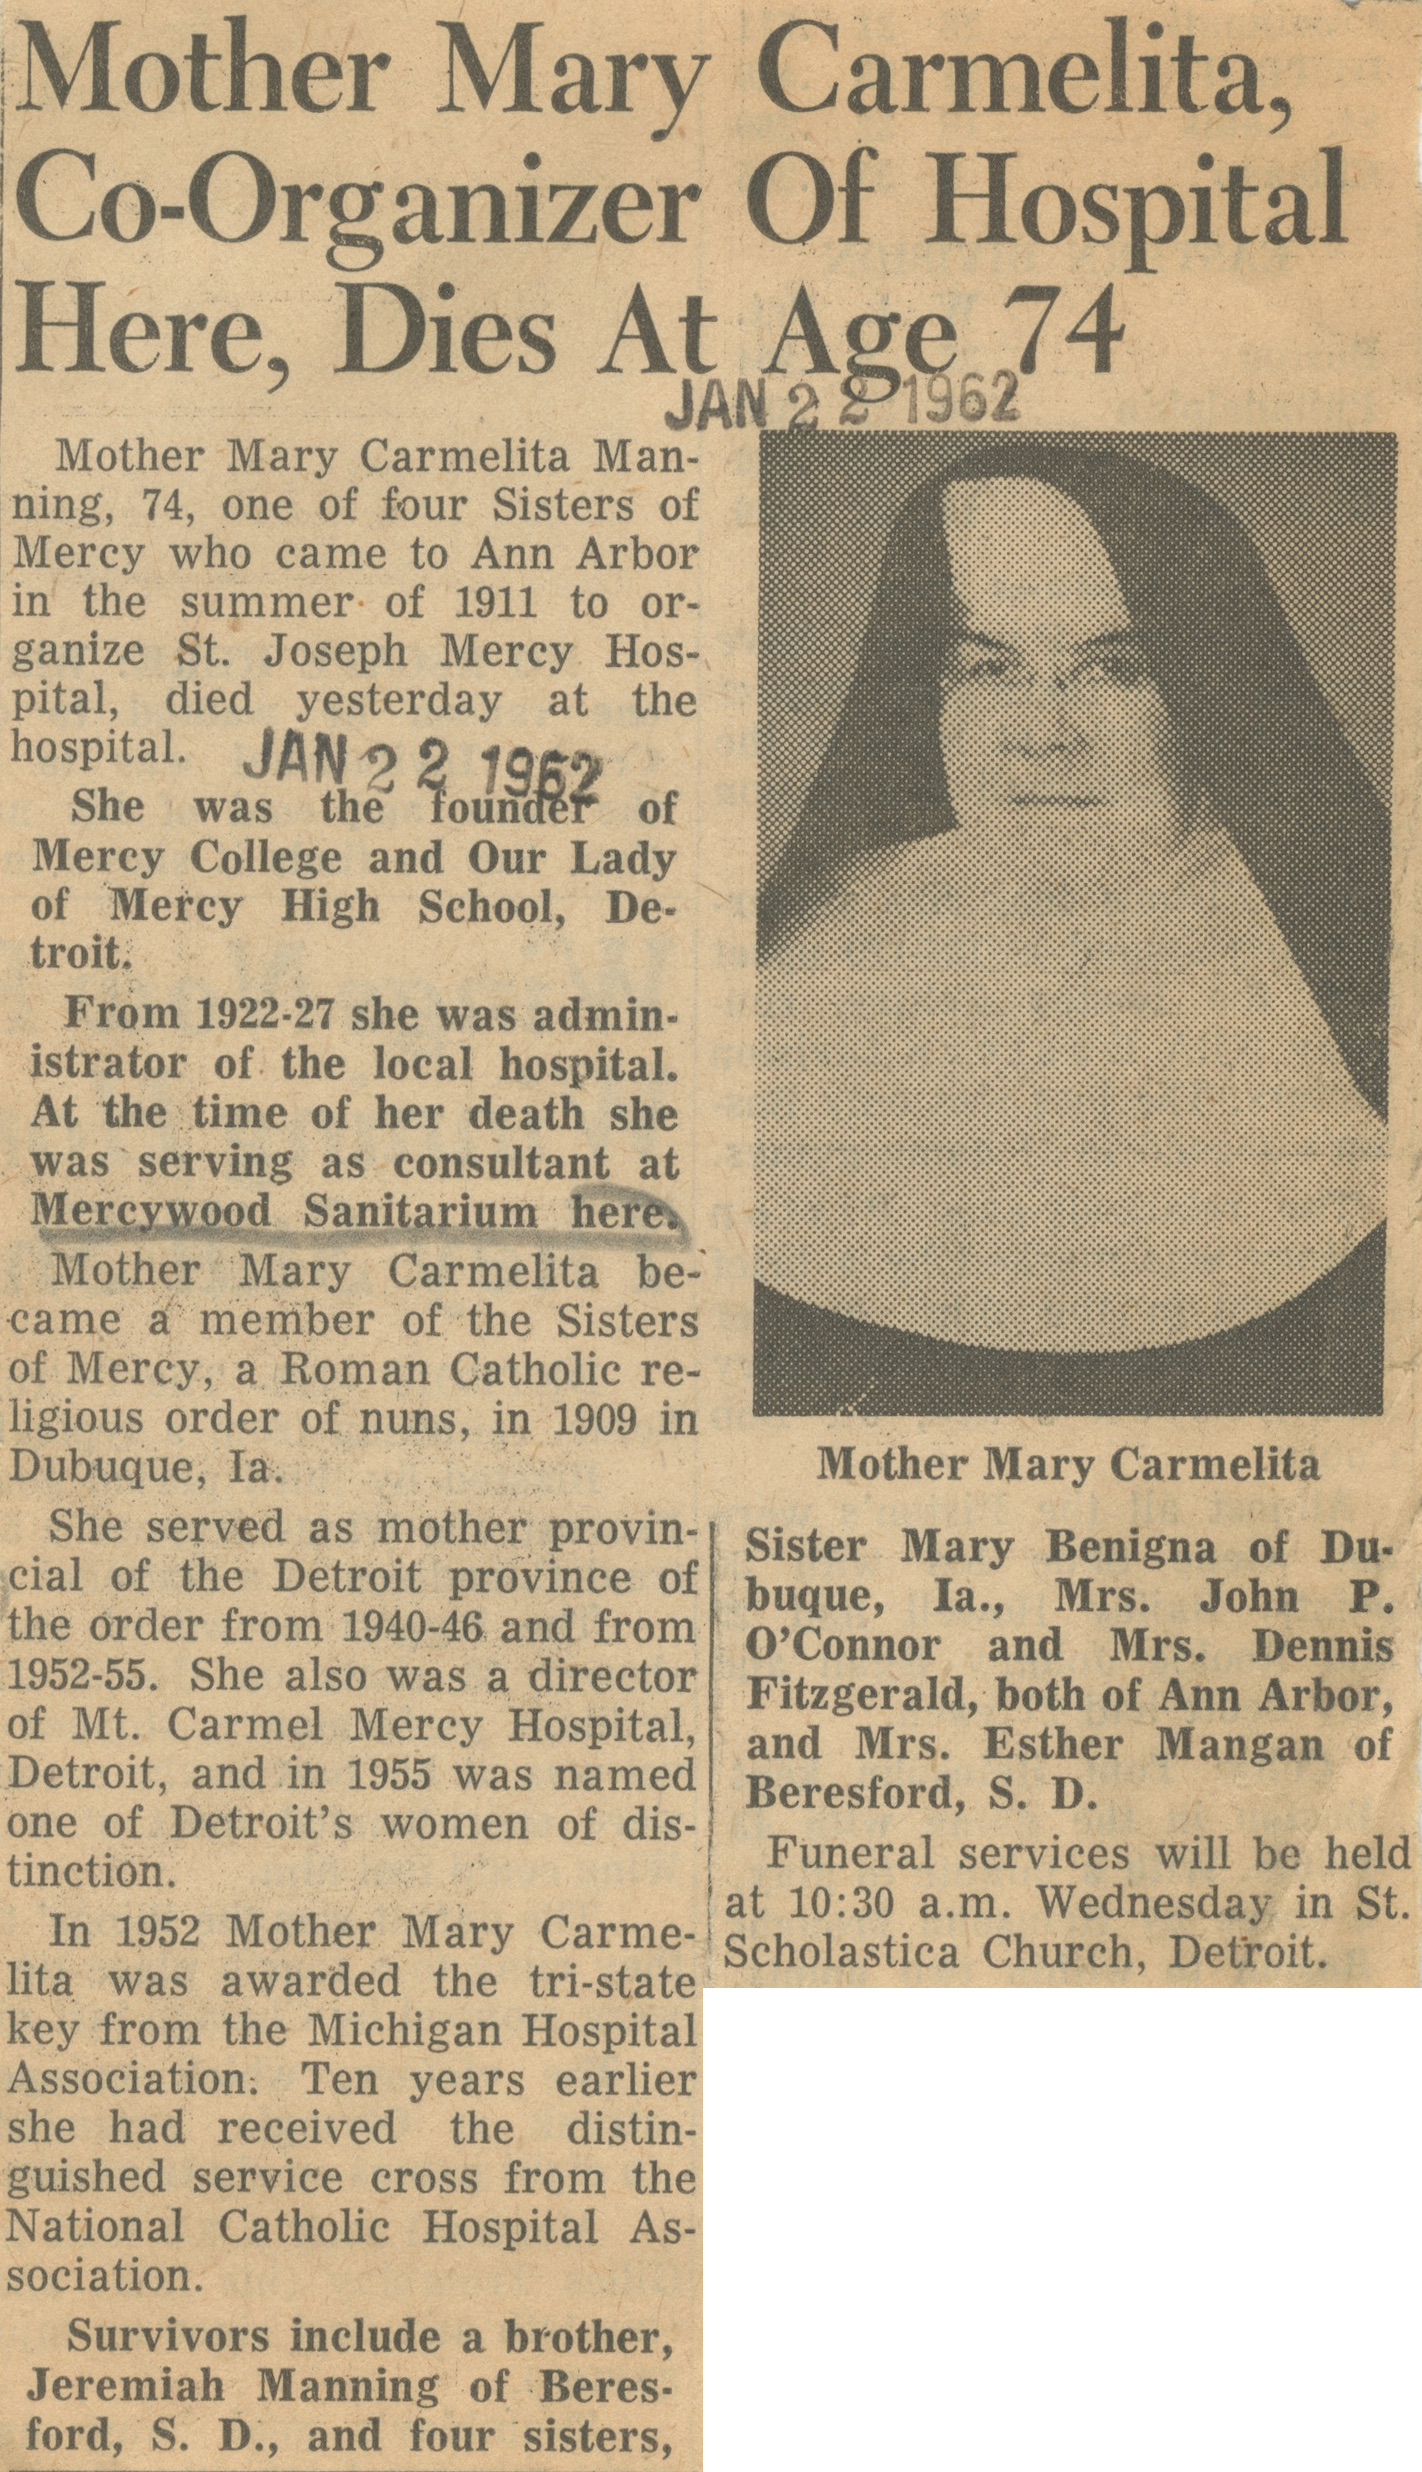 Mother Mary Carmelita, Co-Organizer Of Hospital Here, Dies At Age 74 image